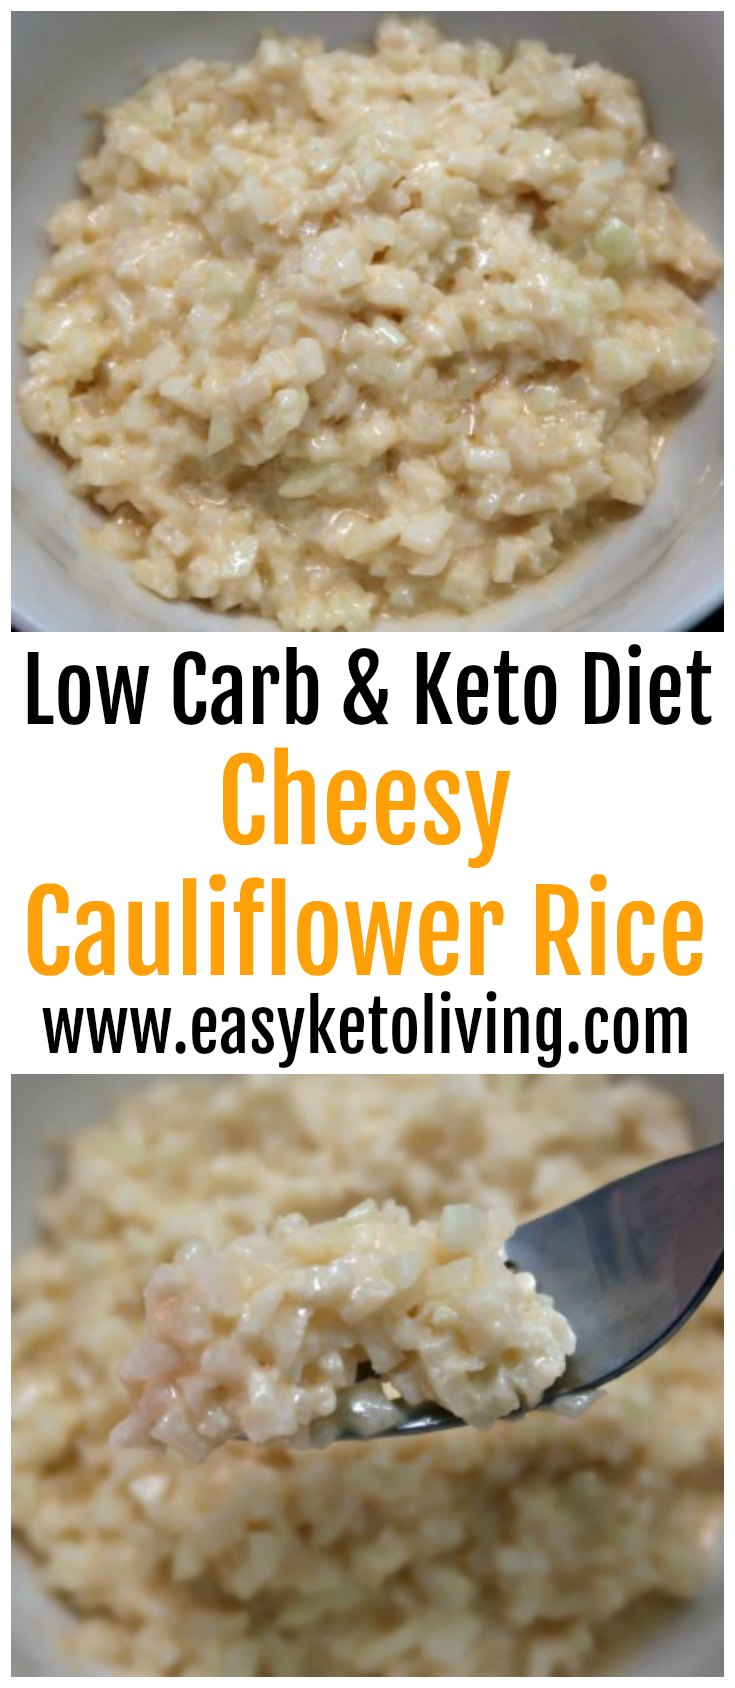 Cheesy Cauliflower Rice Recipe - Easy Low Carb & Keto Diet Friendly Recipes - Quick LCHF Ketogenic Dinner Ideas